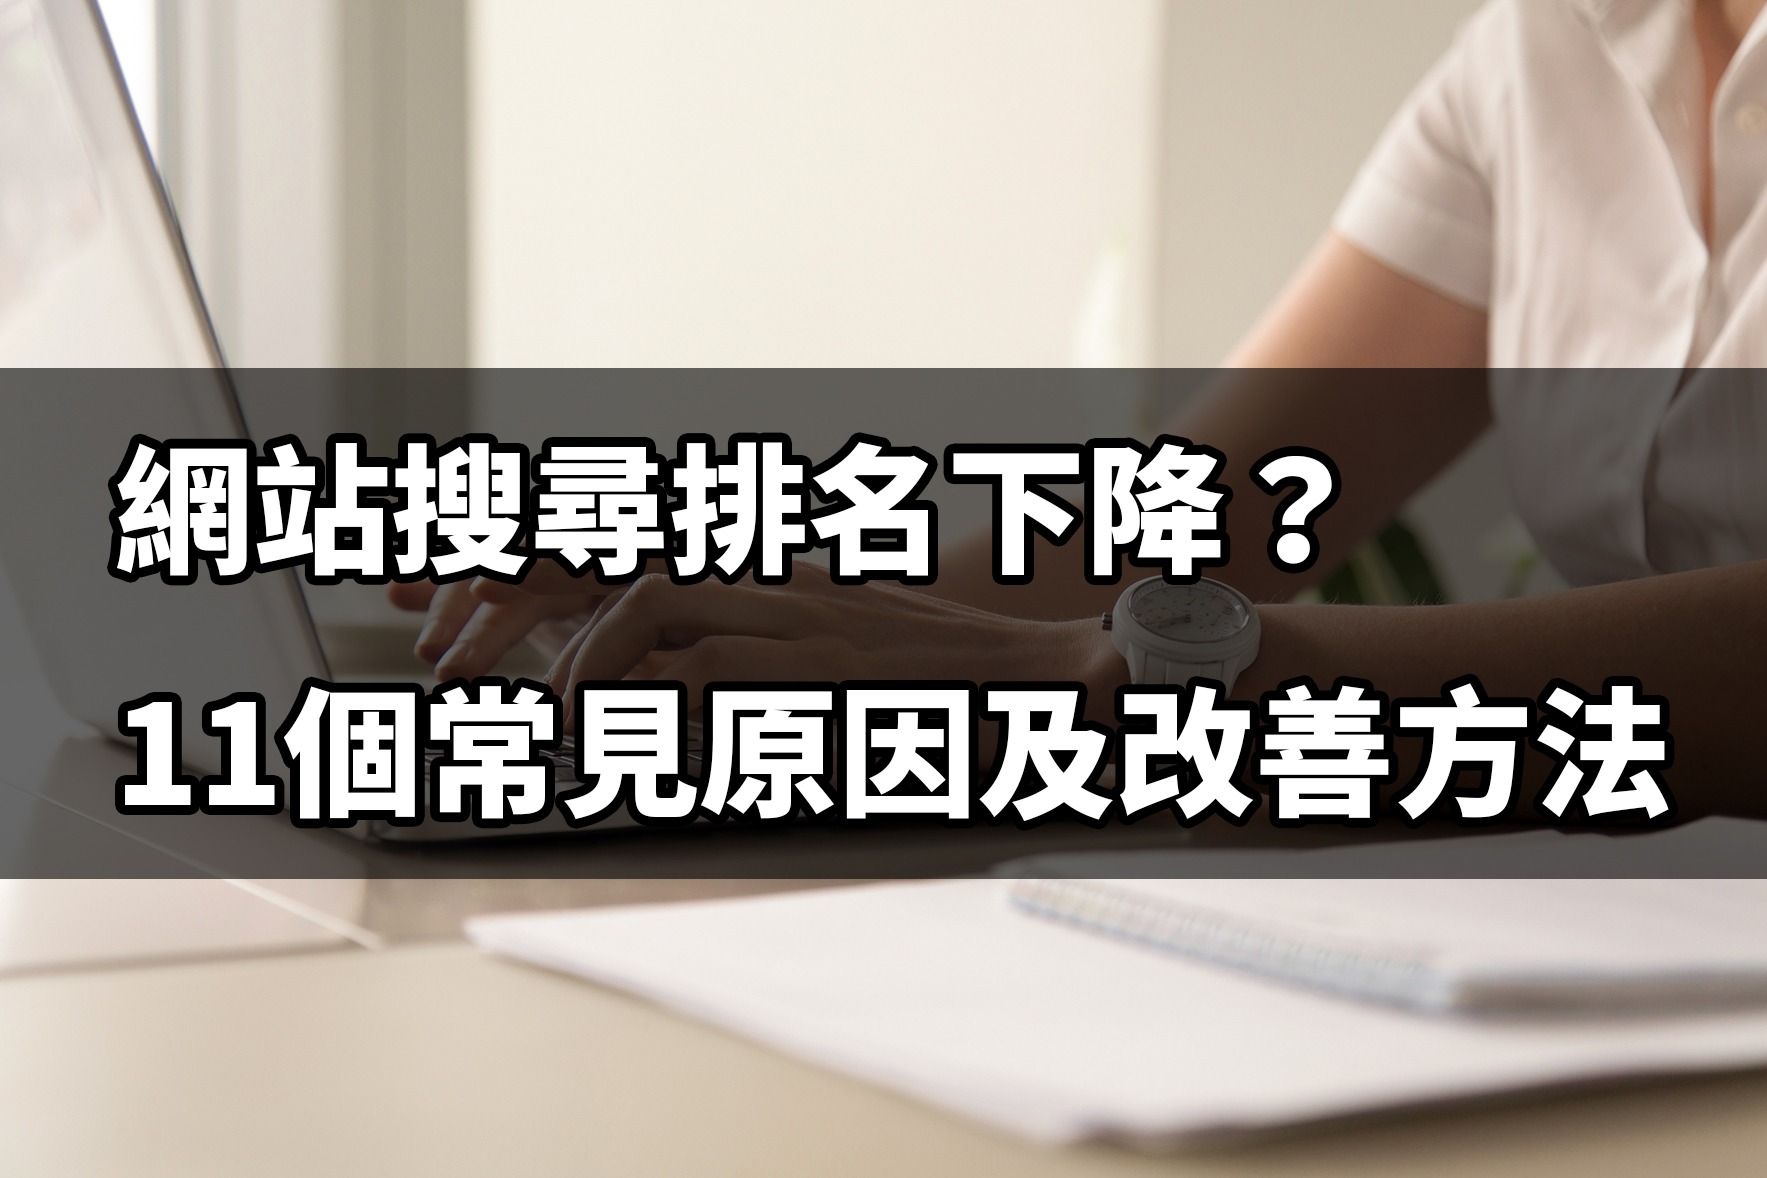 Read more about the article 網站搜尋排名下降?11個常見原因及改善方法